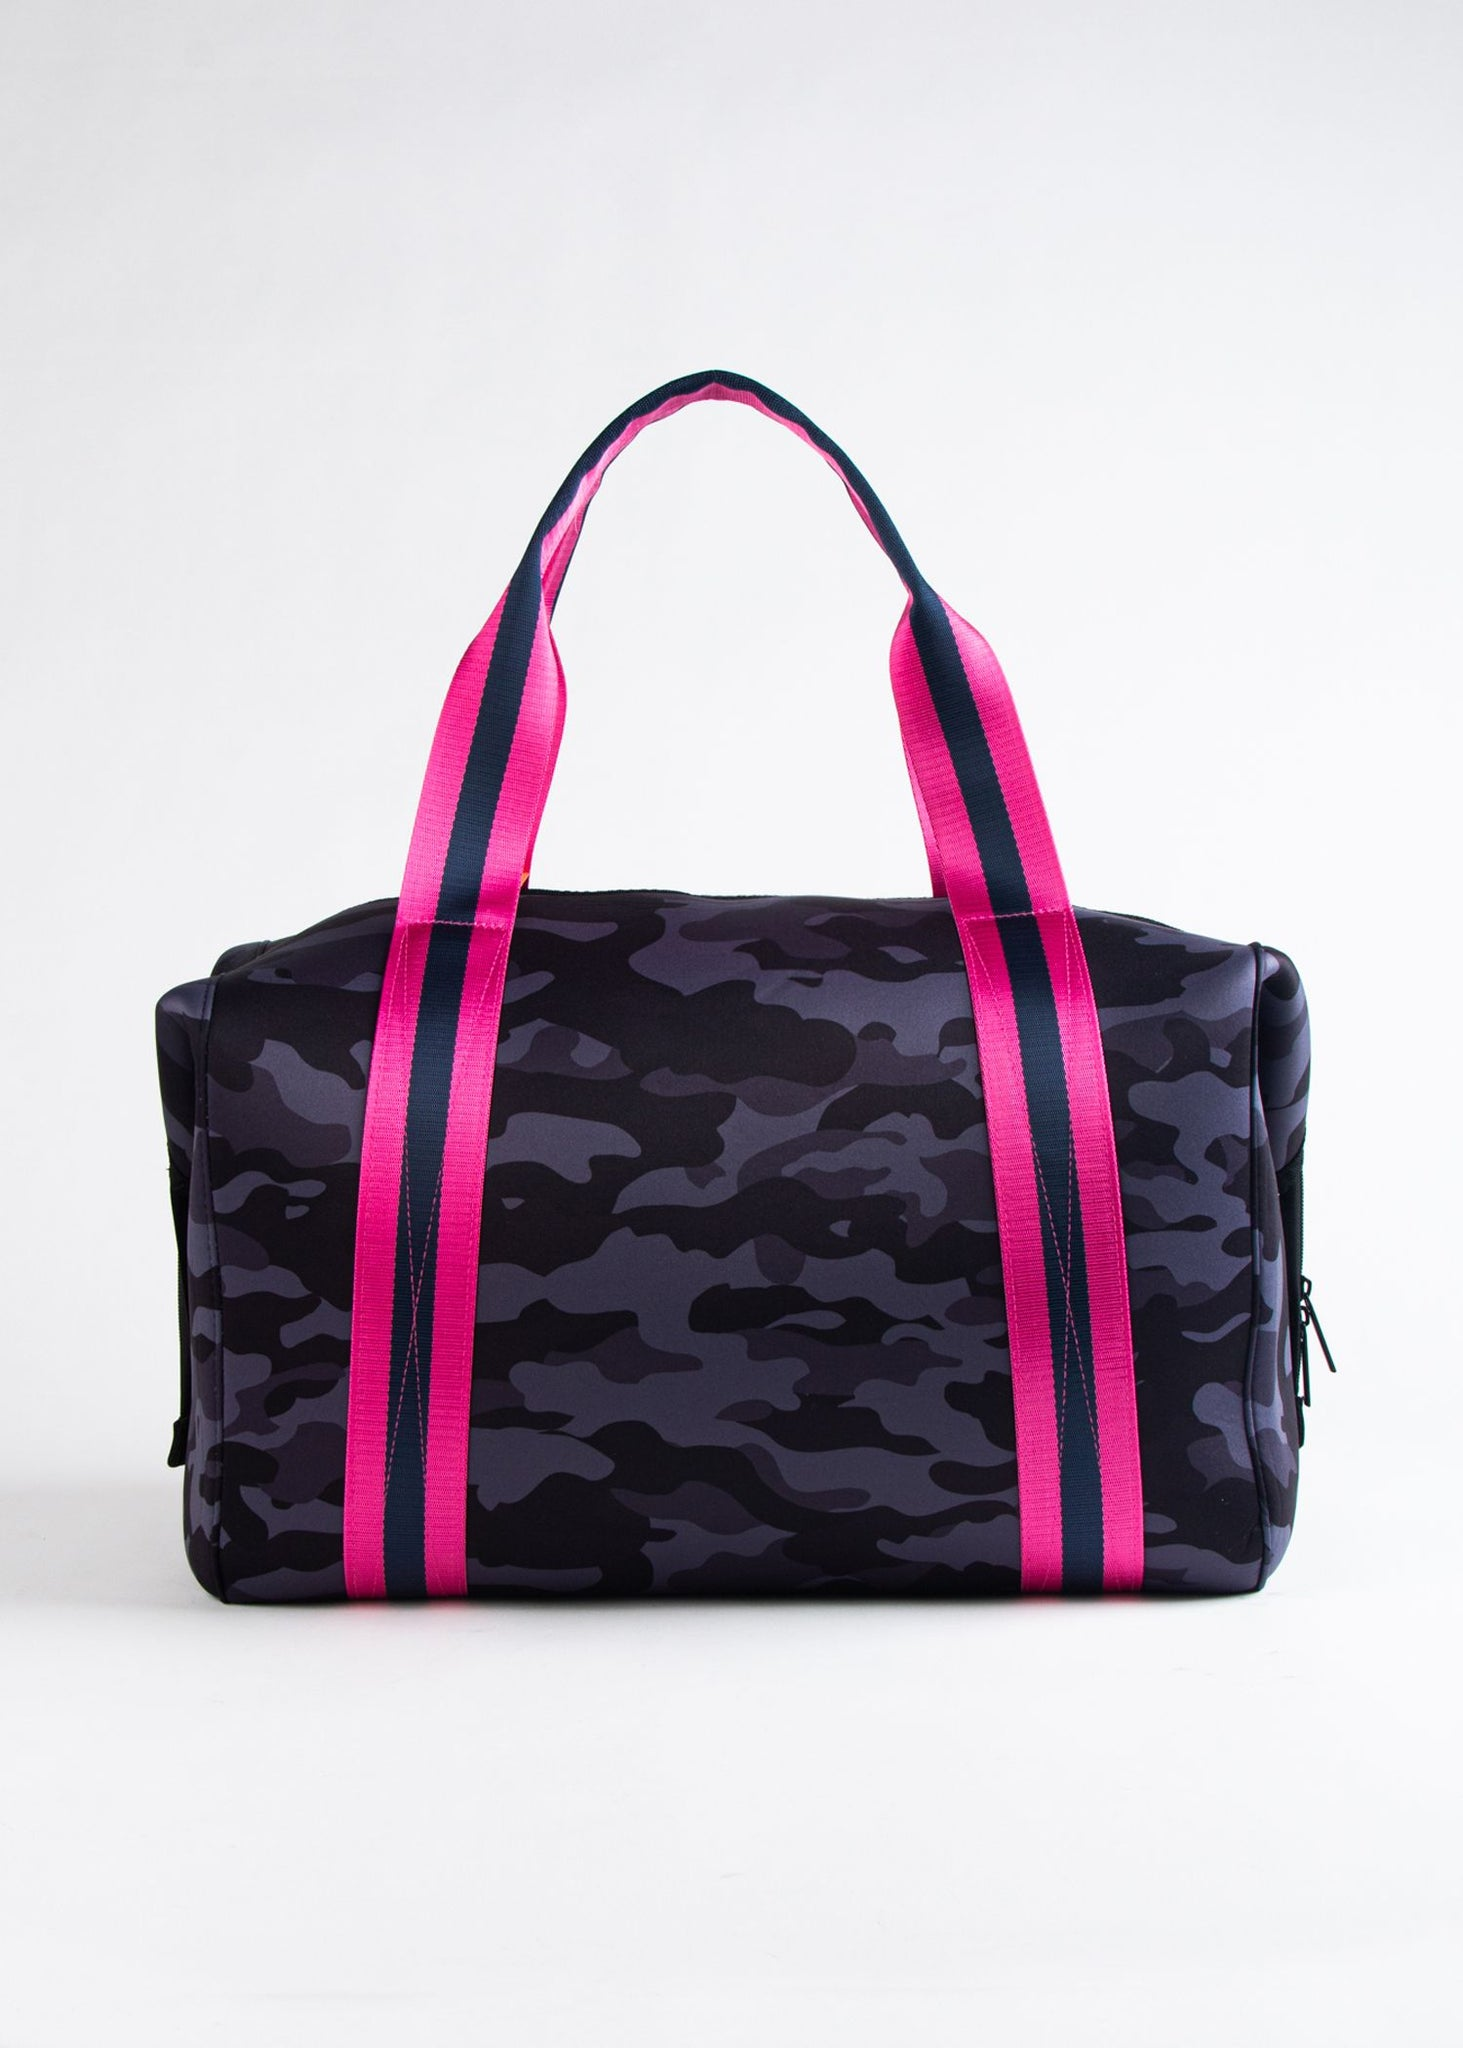 MORGAN-EPIC CARRY-ON NEOPRENE TOTE